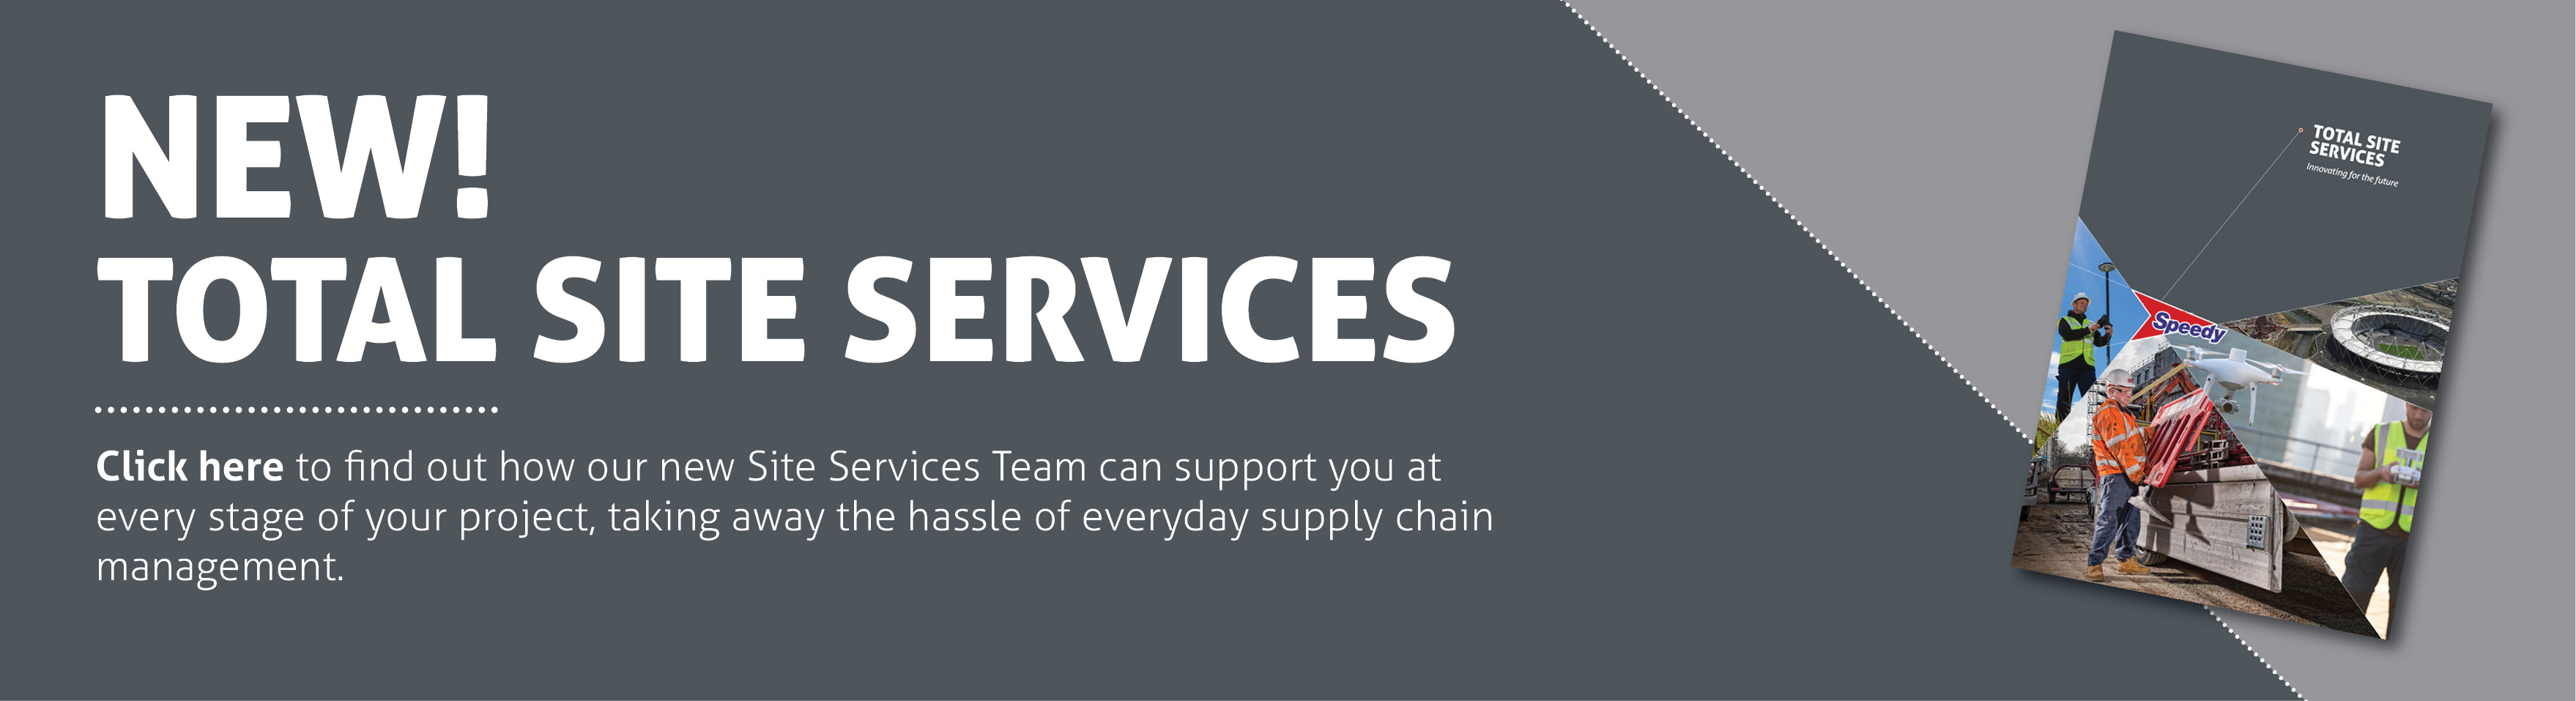 Site Services Web Banner.jpg